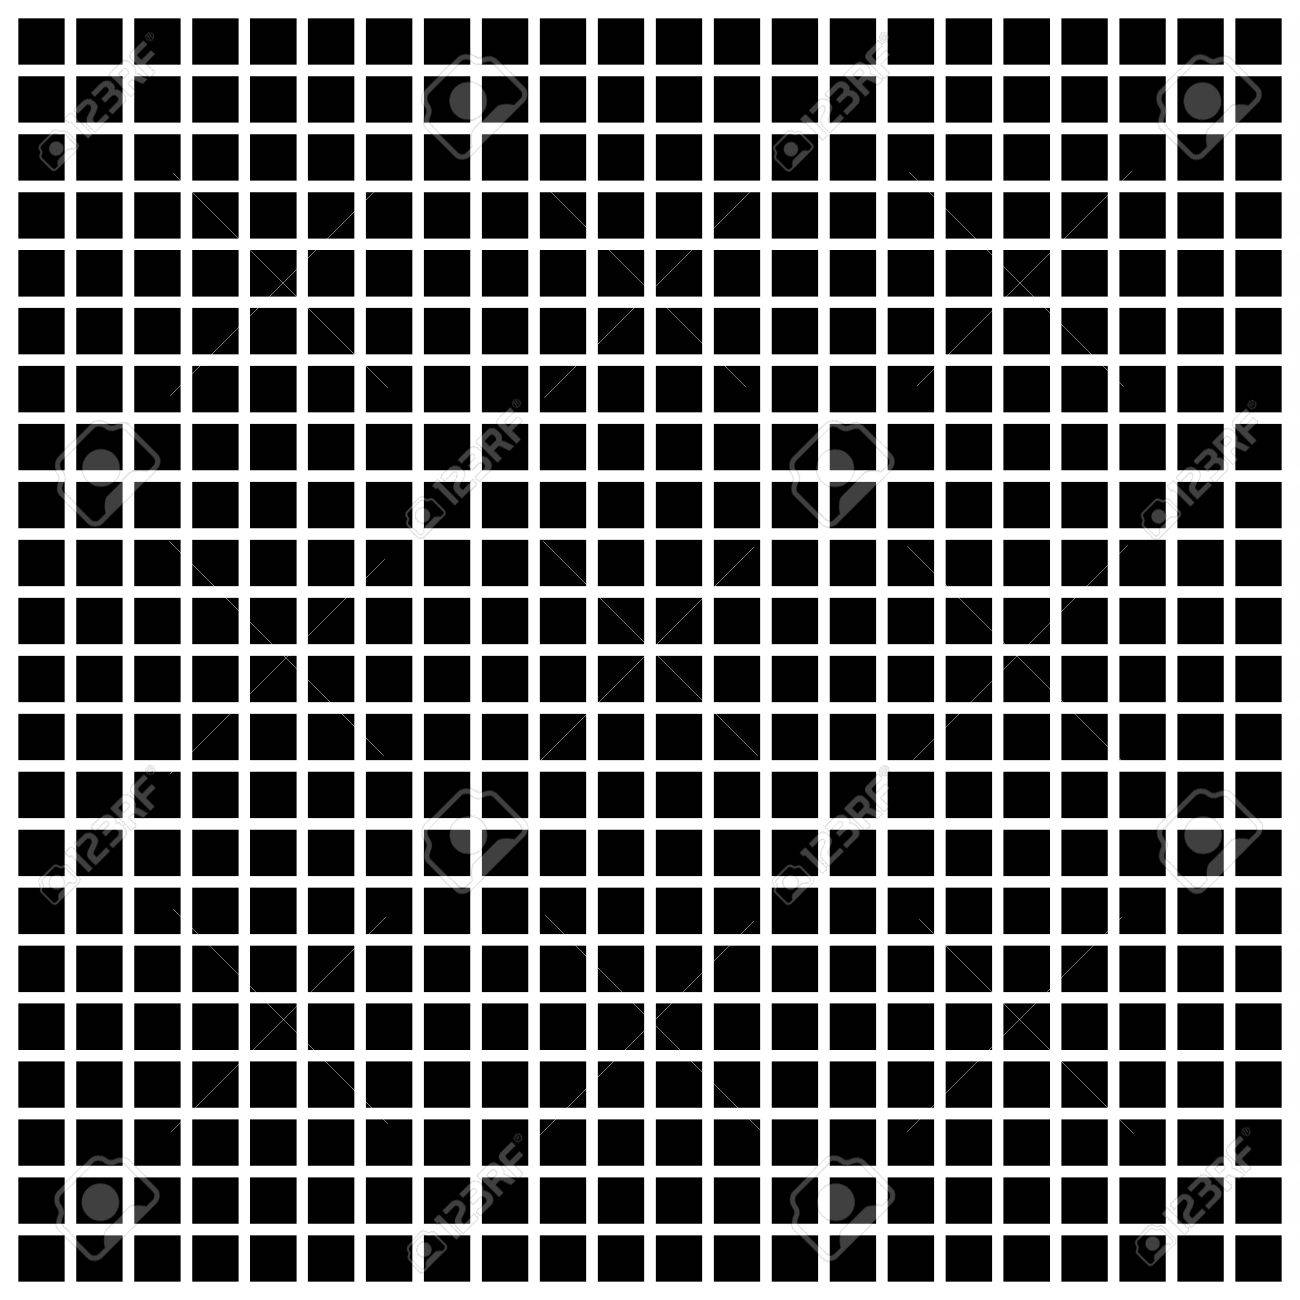 Square The Simple Geometric Pattern Of Black Squares With Shadowed